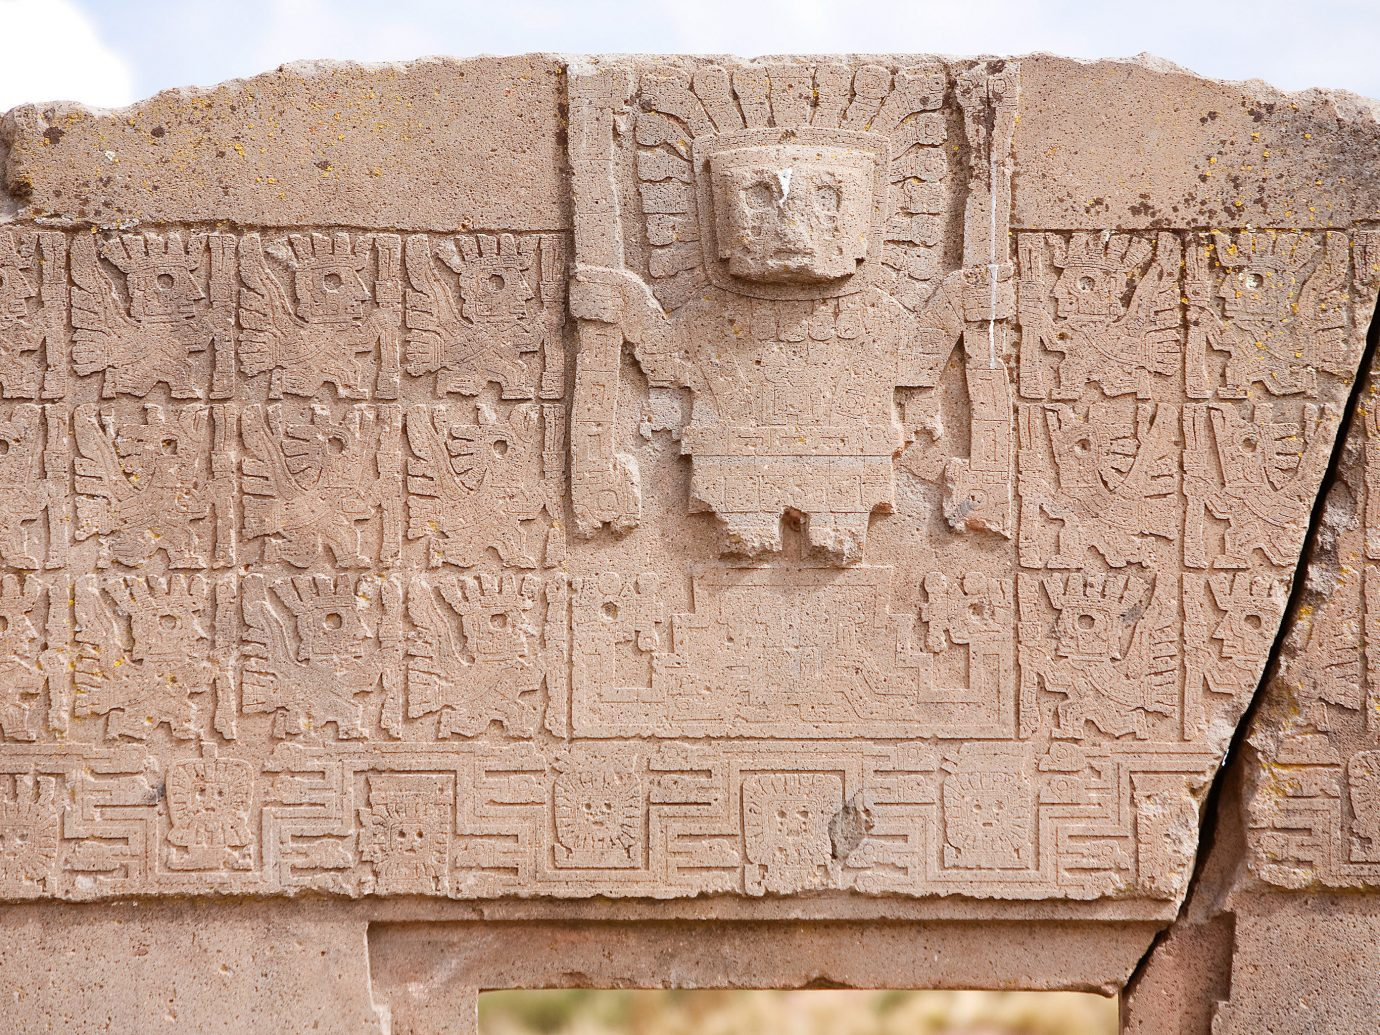 Arts + Culture Landmarks Trip Ideas building building material ancient history historic site archaeological site relief history stone carving wall egyptian temple Ruins carving brick monument mortuary temple stone stele stone wall memorial artifact rock sand